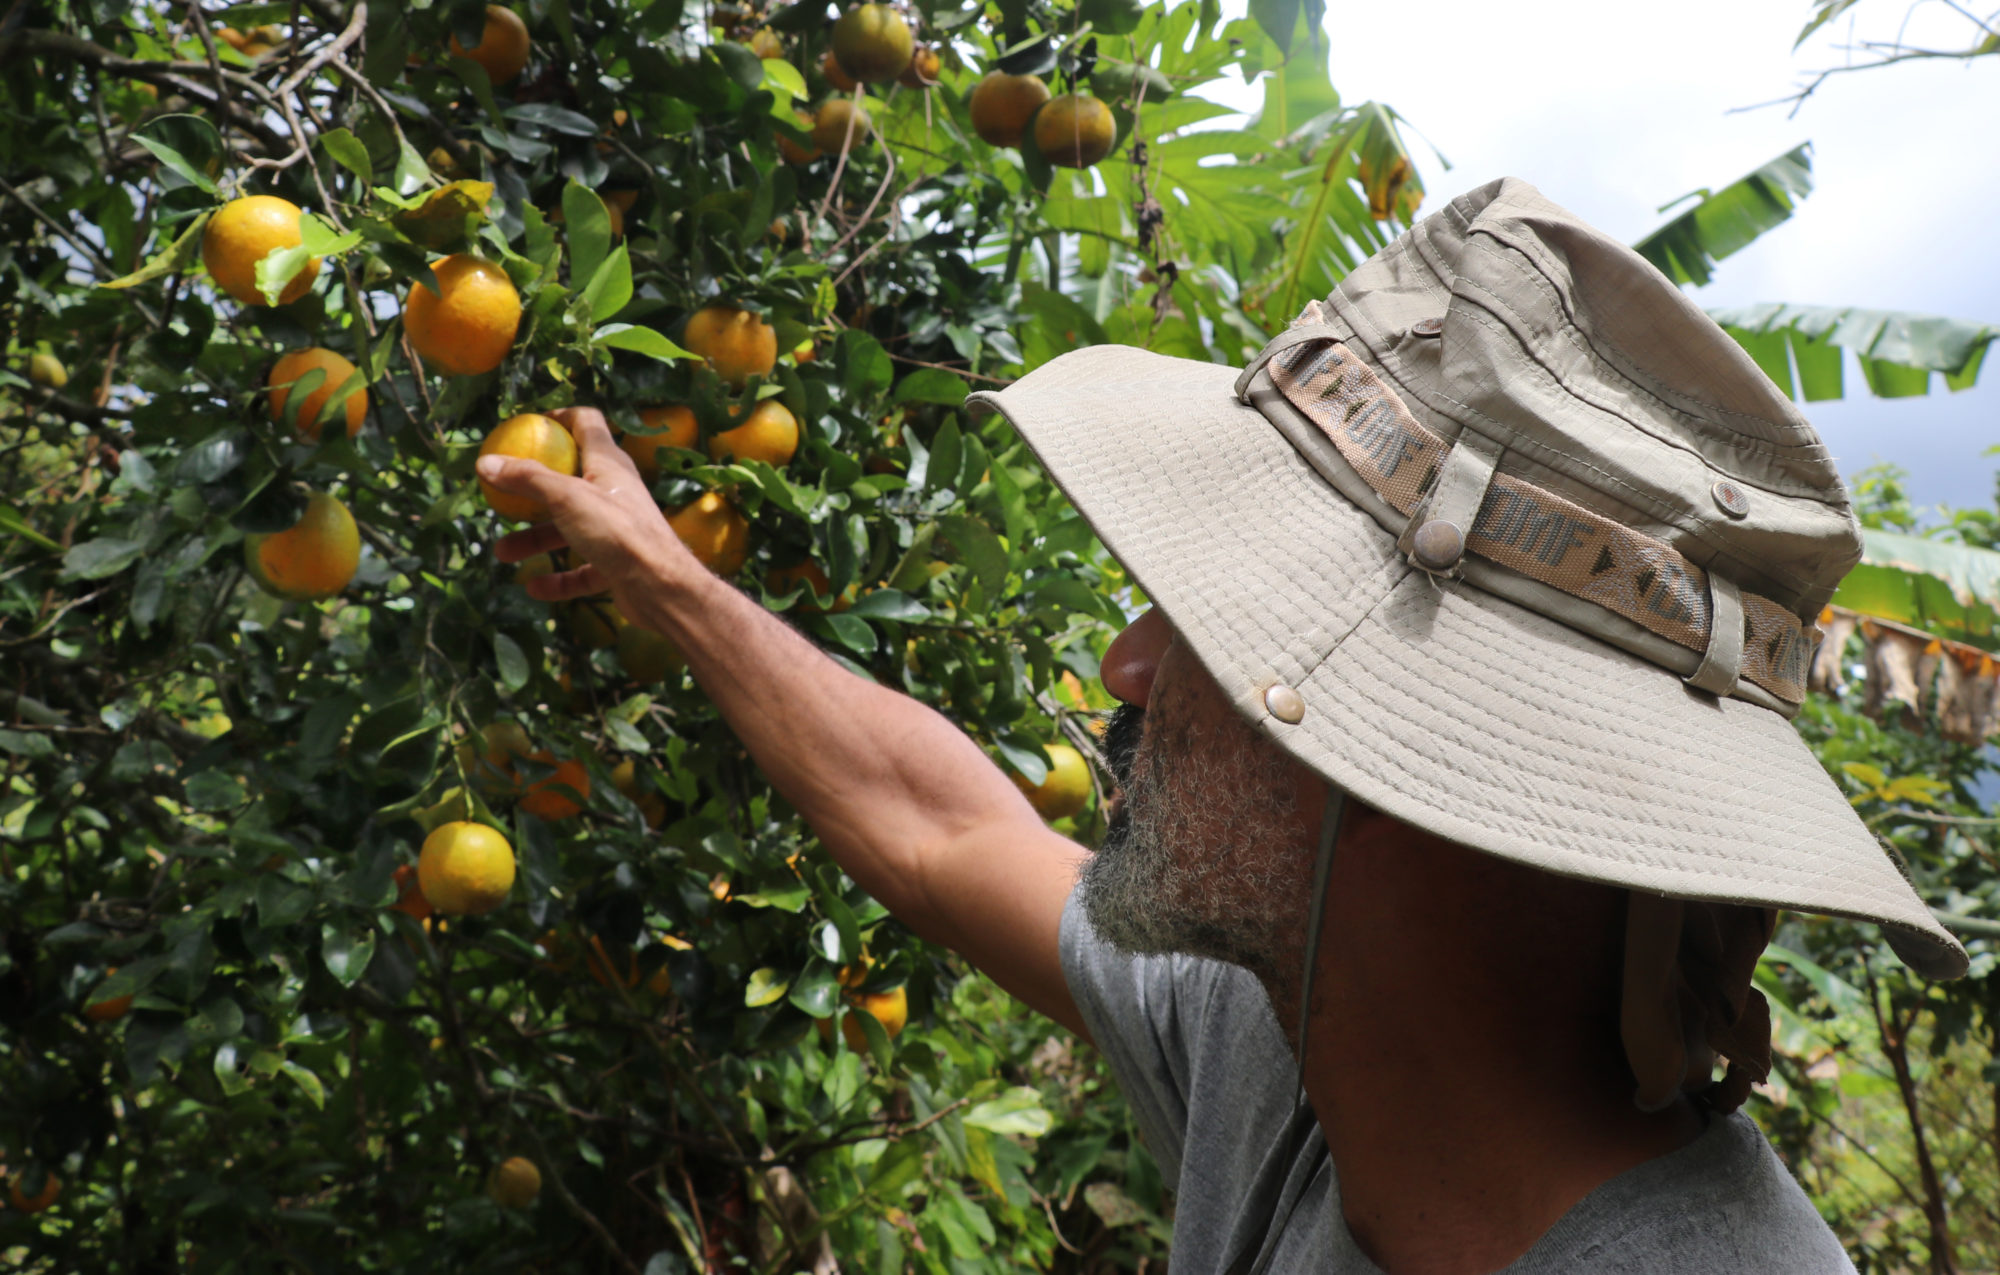 Paul Ratliff prefers working in an orchard to cubicle life. Photo by Tina Locurto